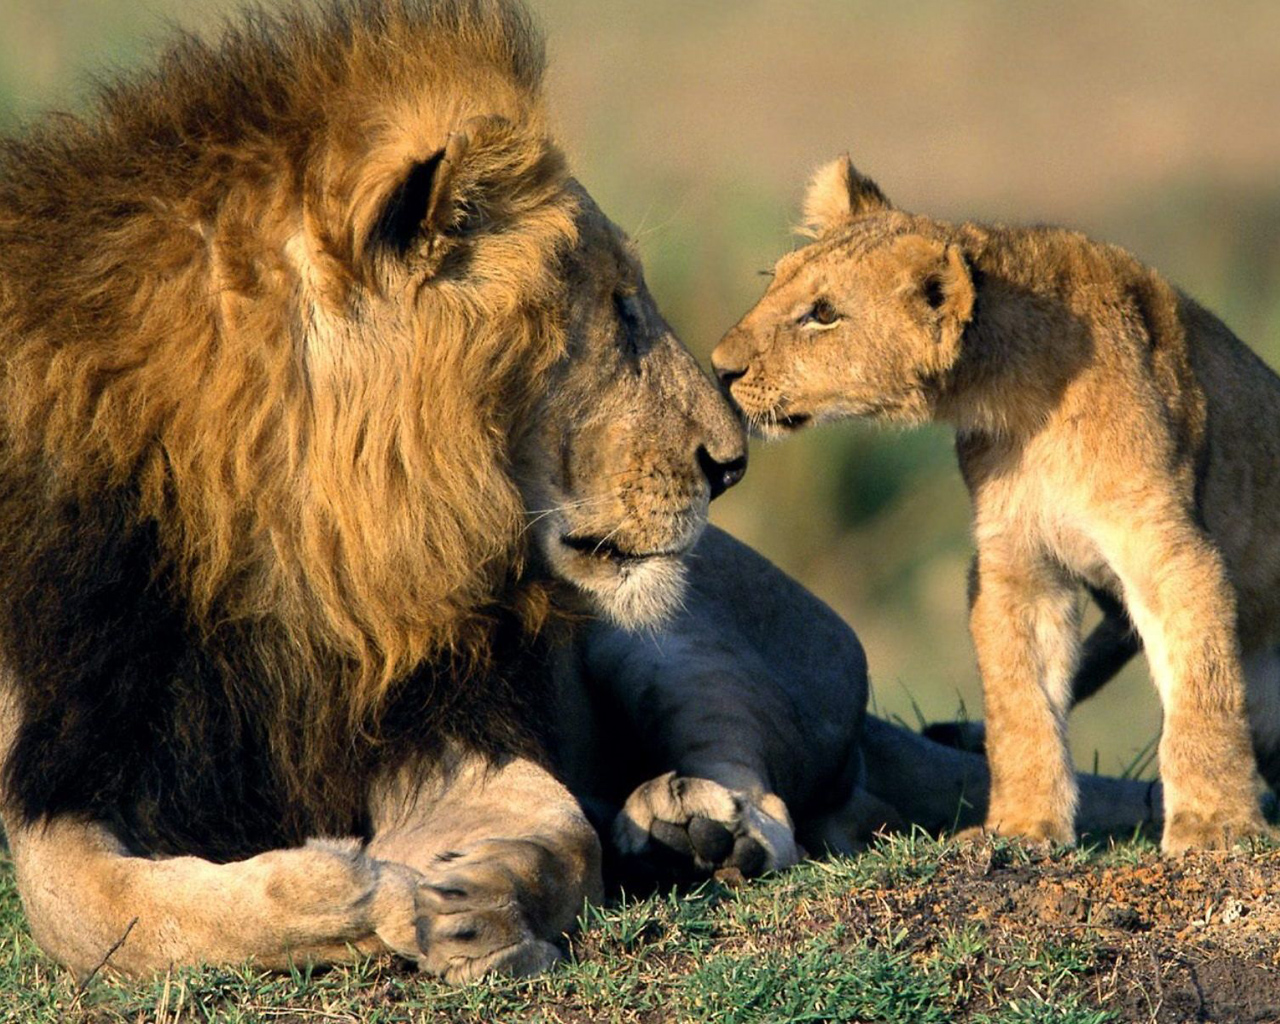 The love of a lion